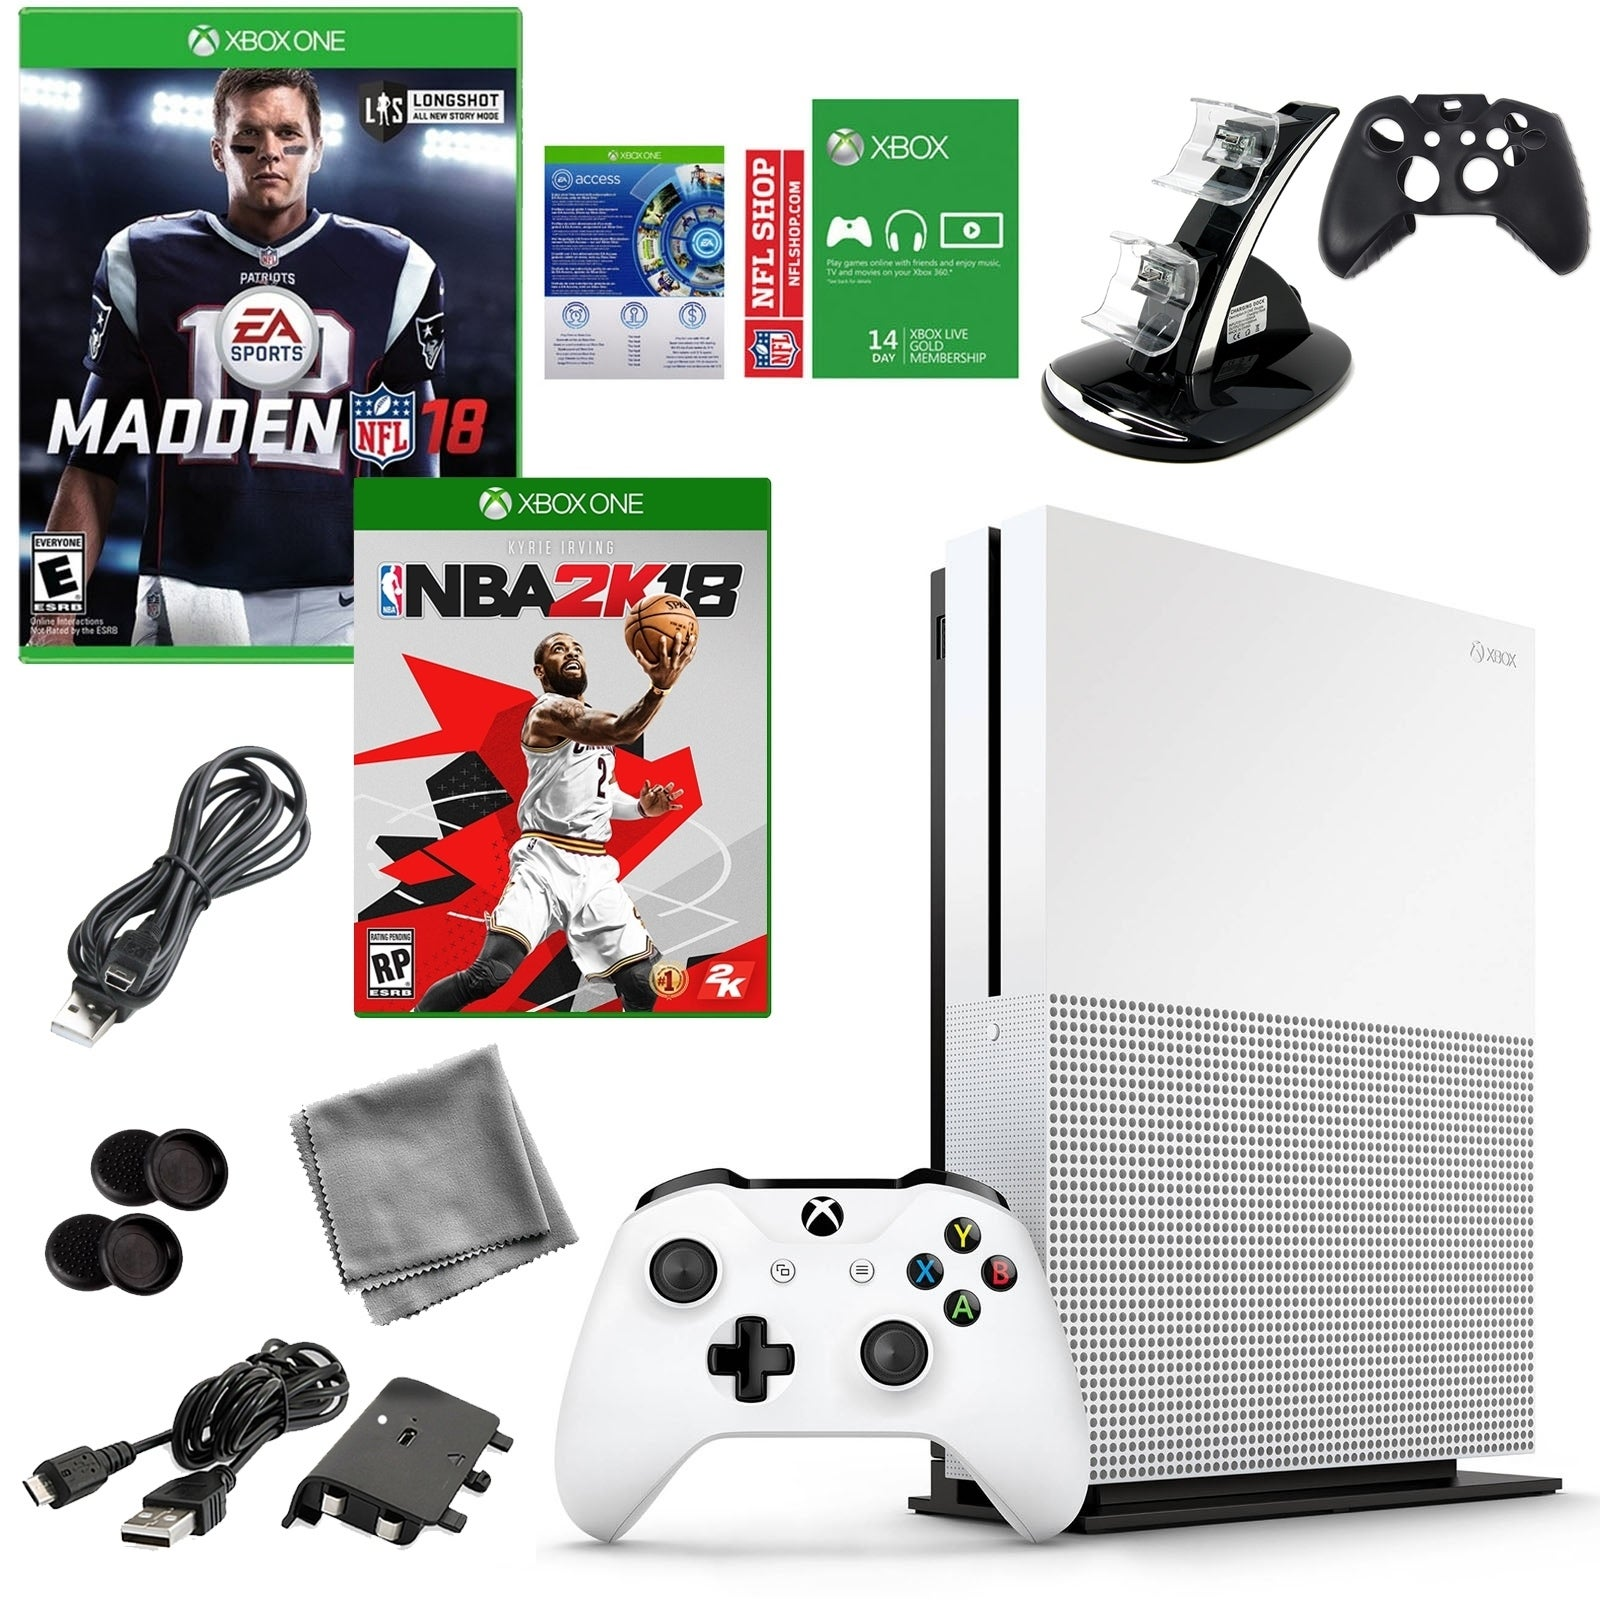 Xbox One Madden NFL 18 500GB Console with NBA 2K18 Game and Accessories Bundle